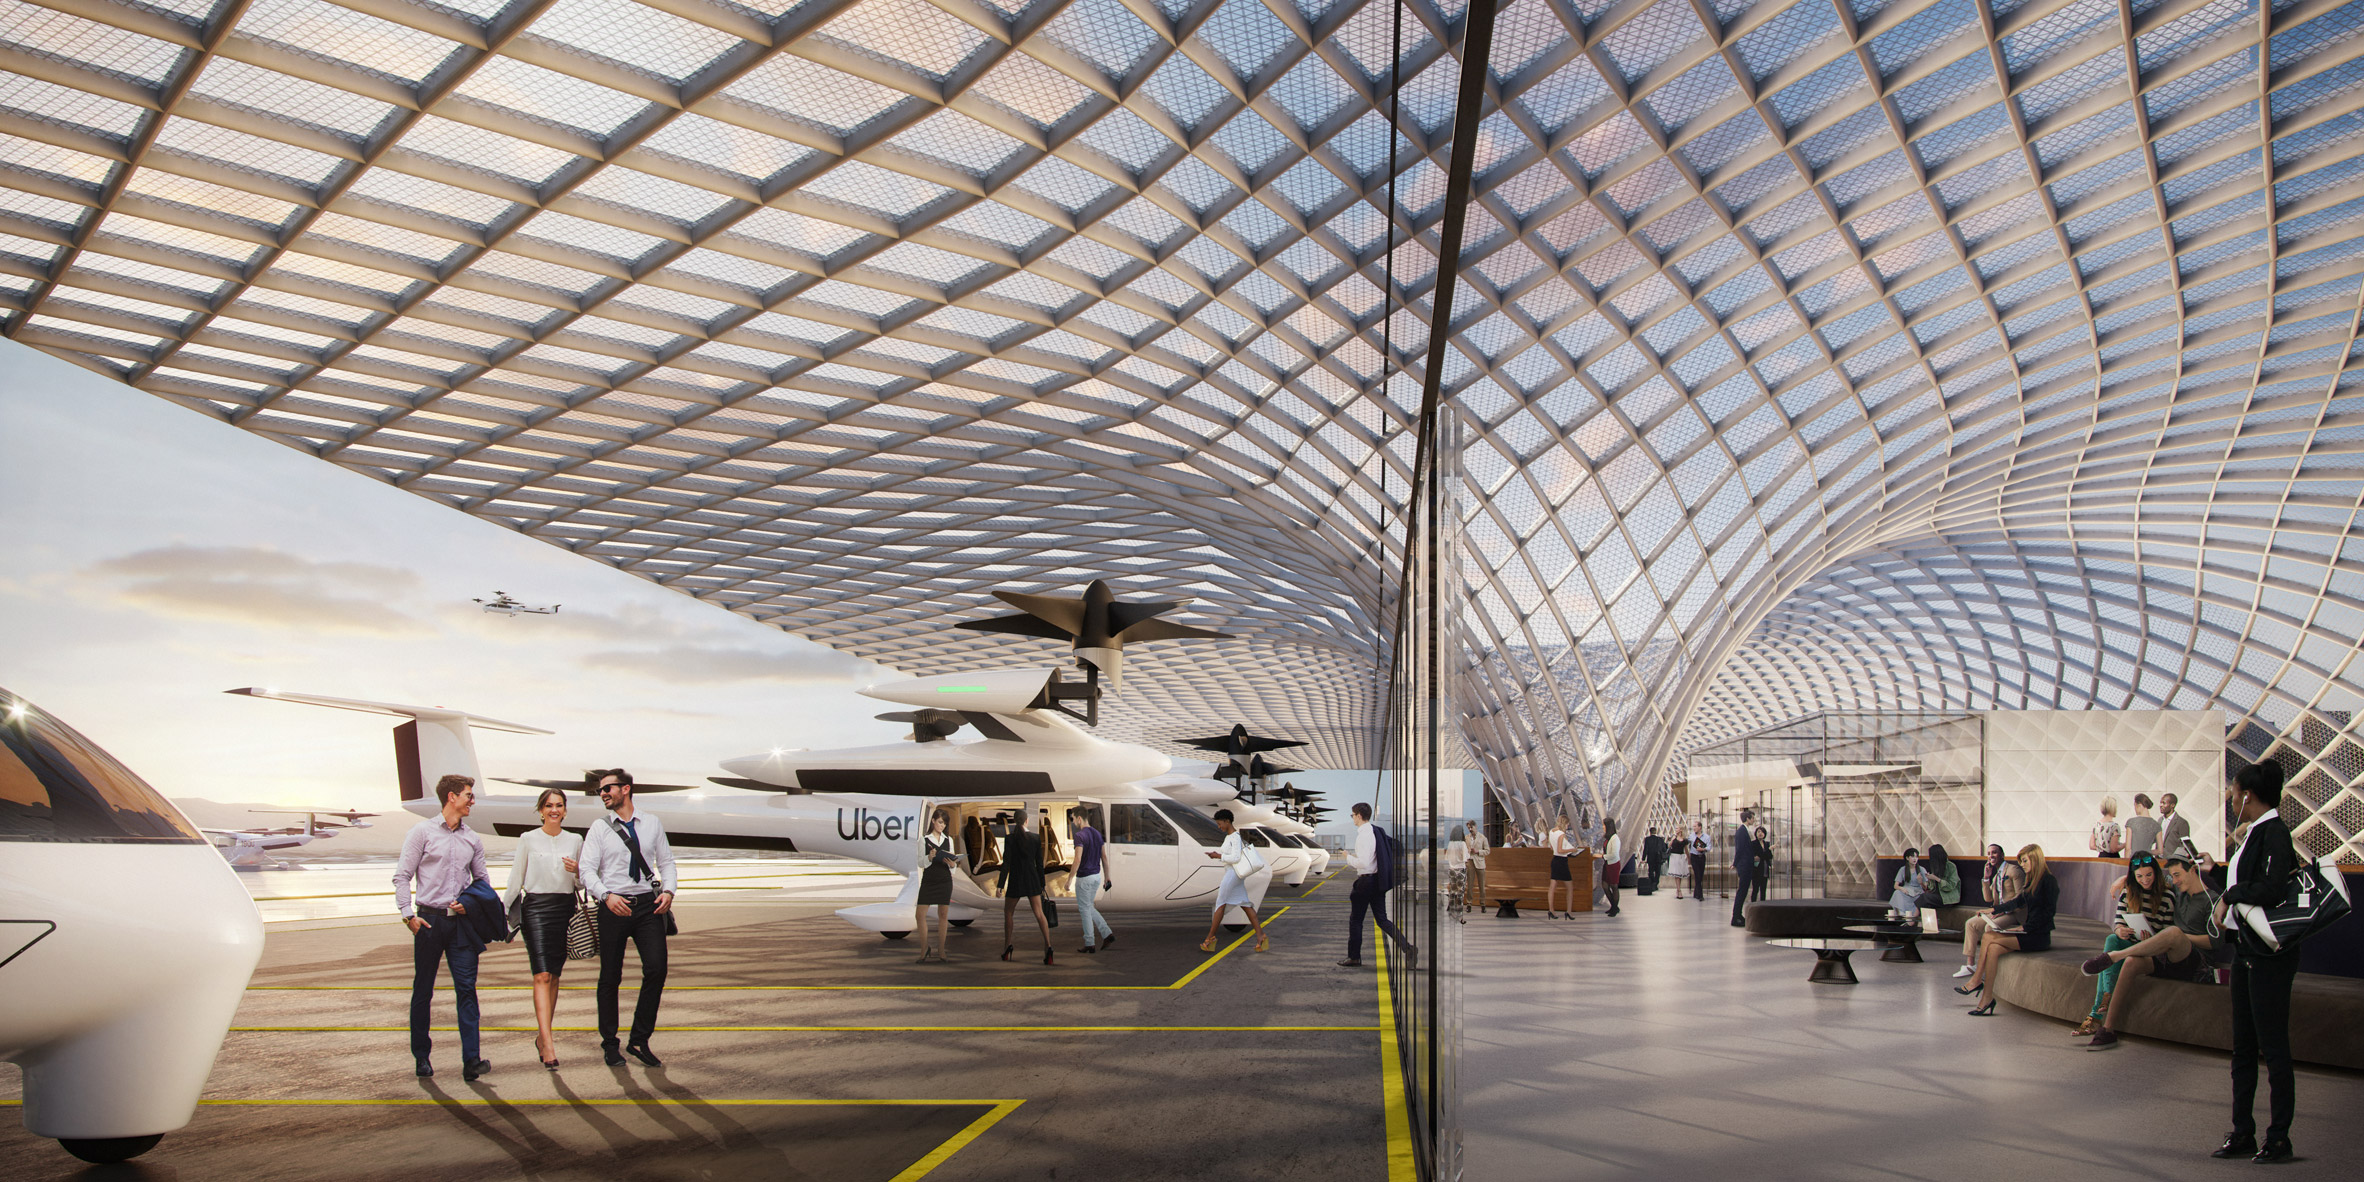 Uber Elevate by Foster Partners